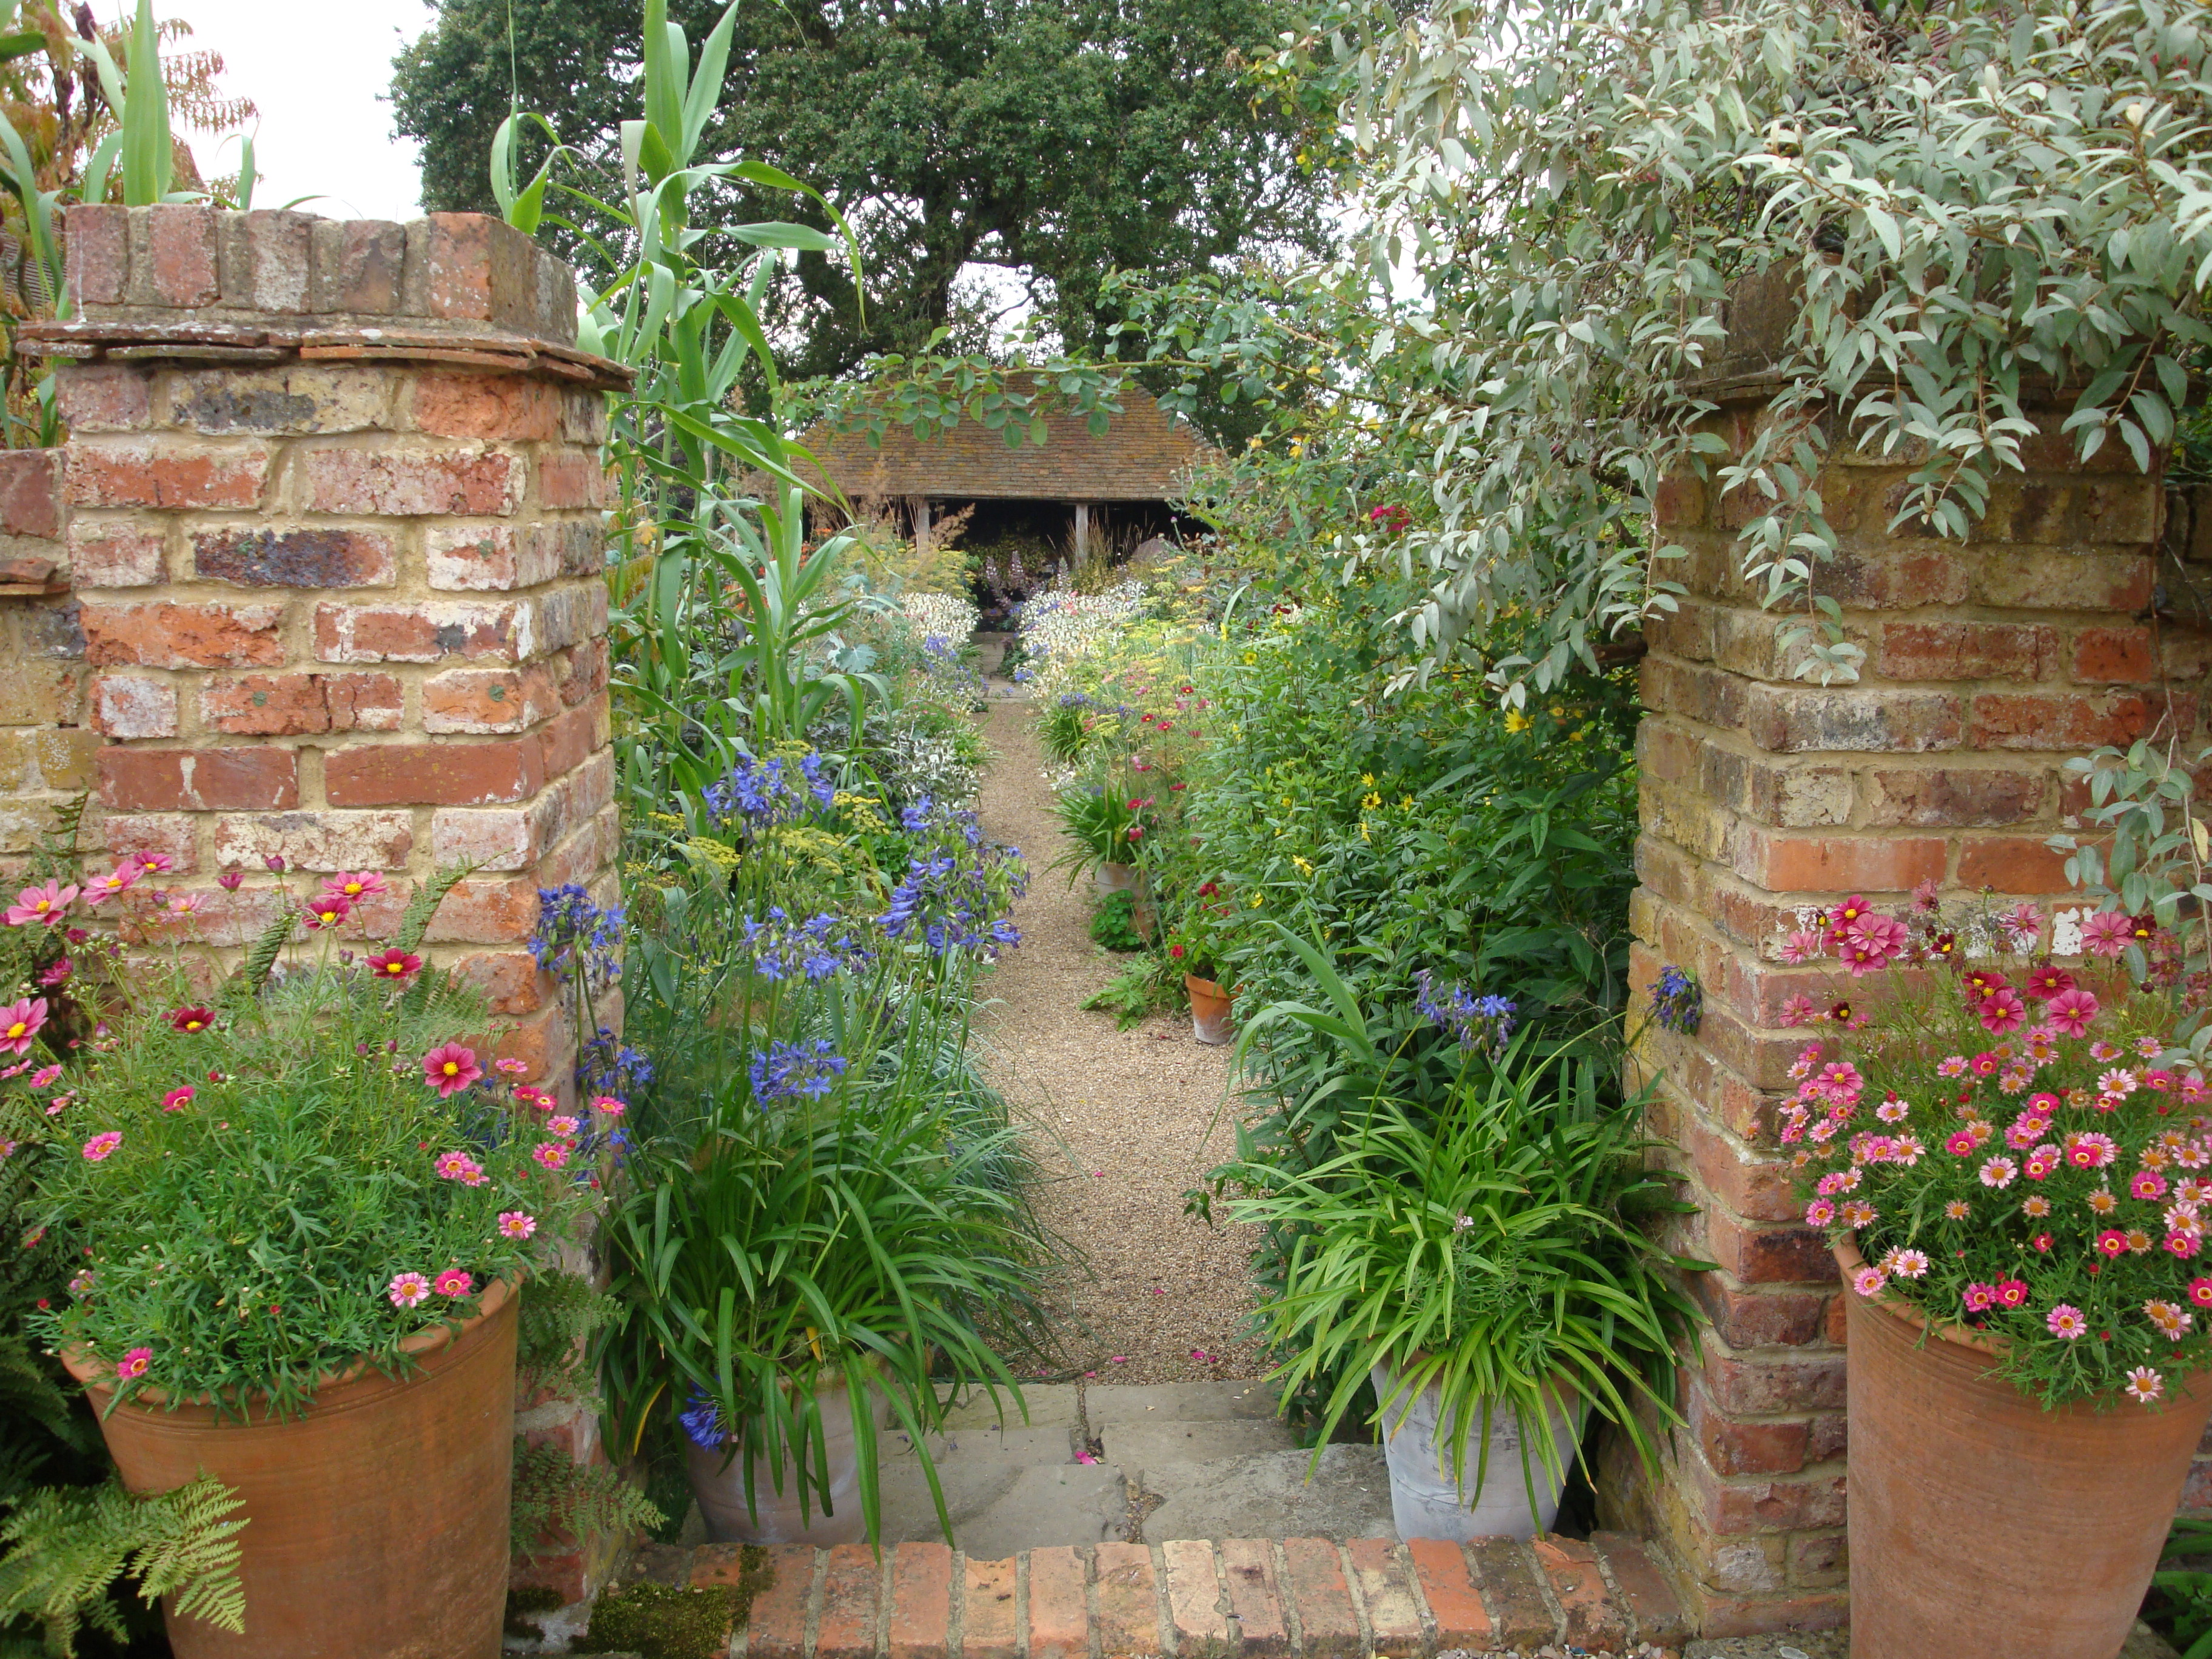 The entrance to the Oast Garden